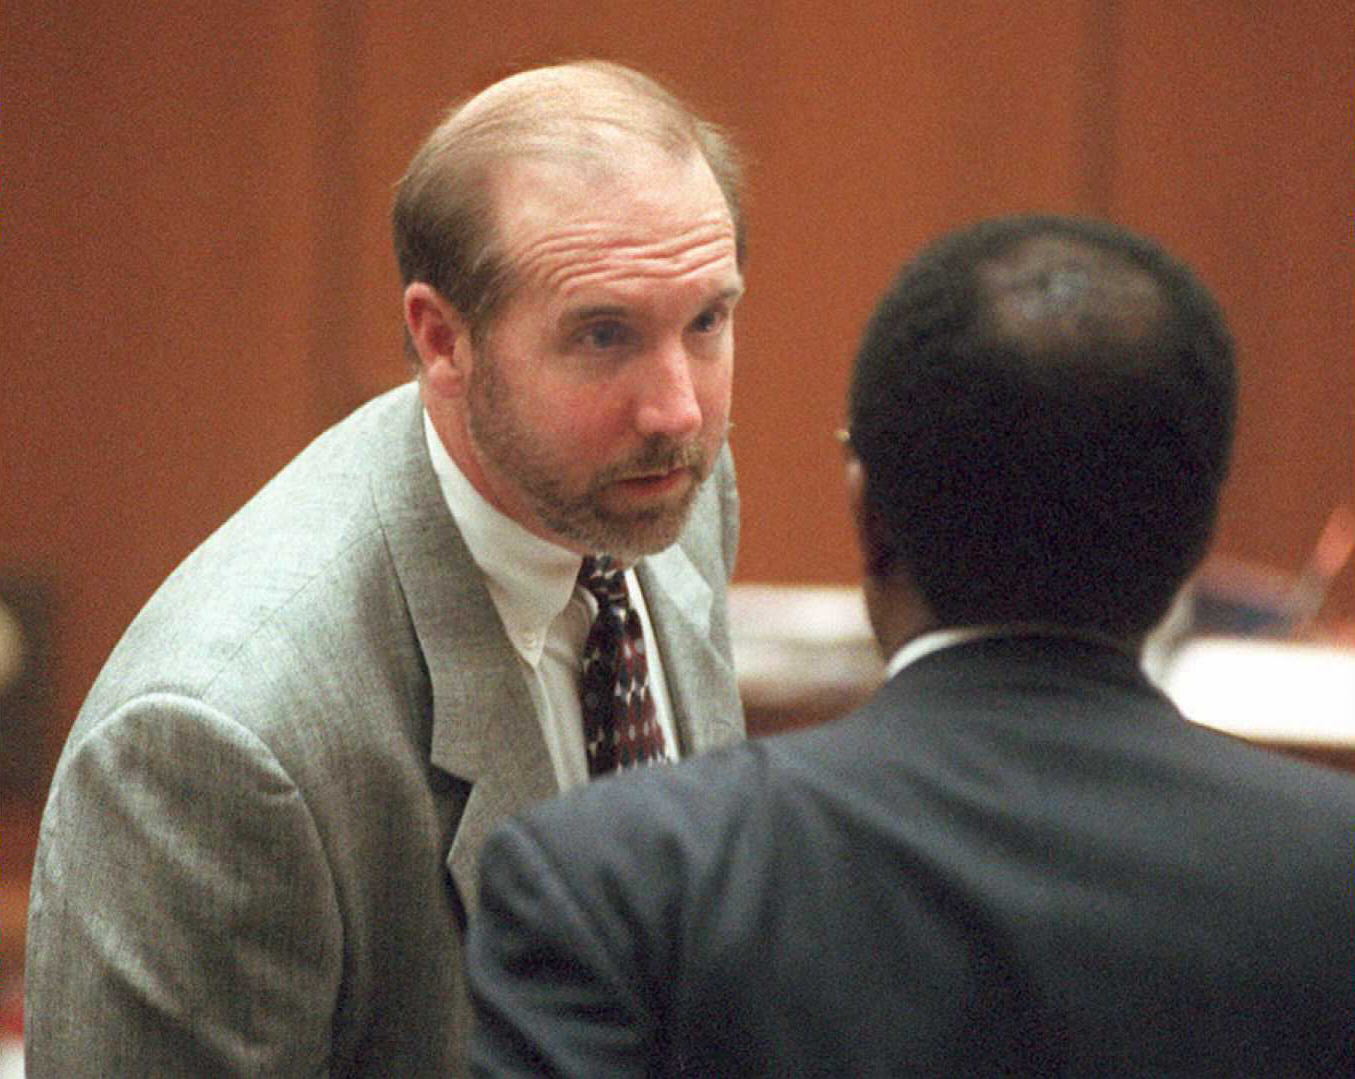 Heart attack scare at O.J. Simpson trials first day - NY